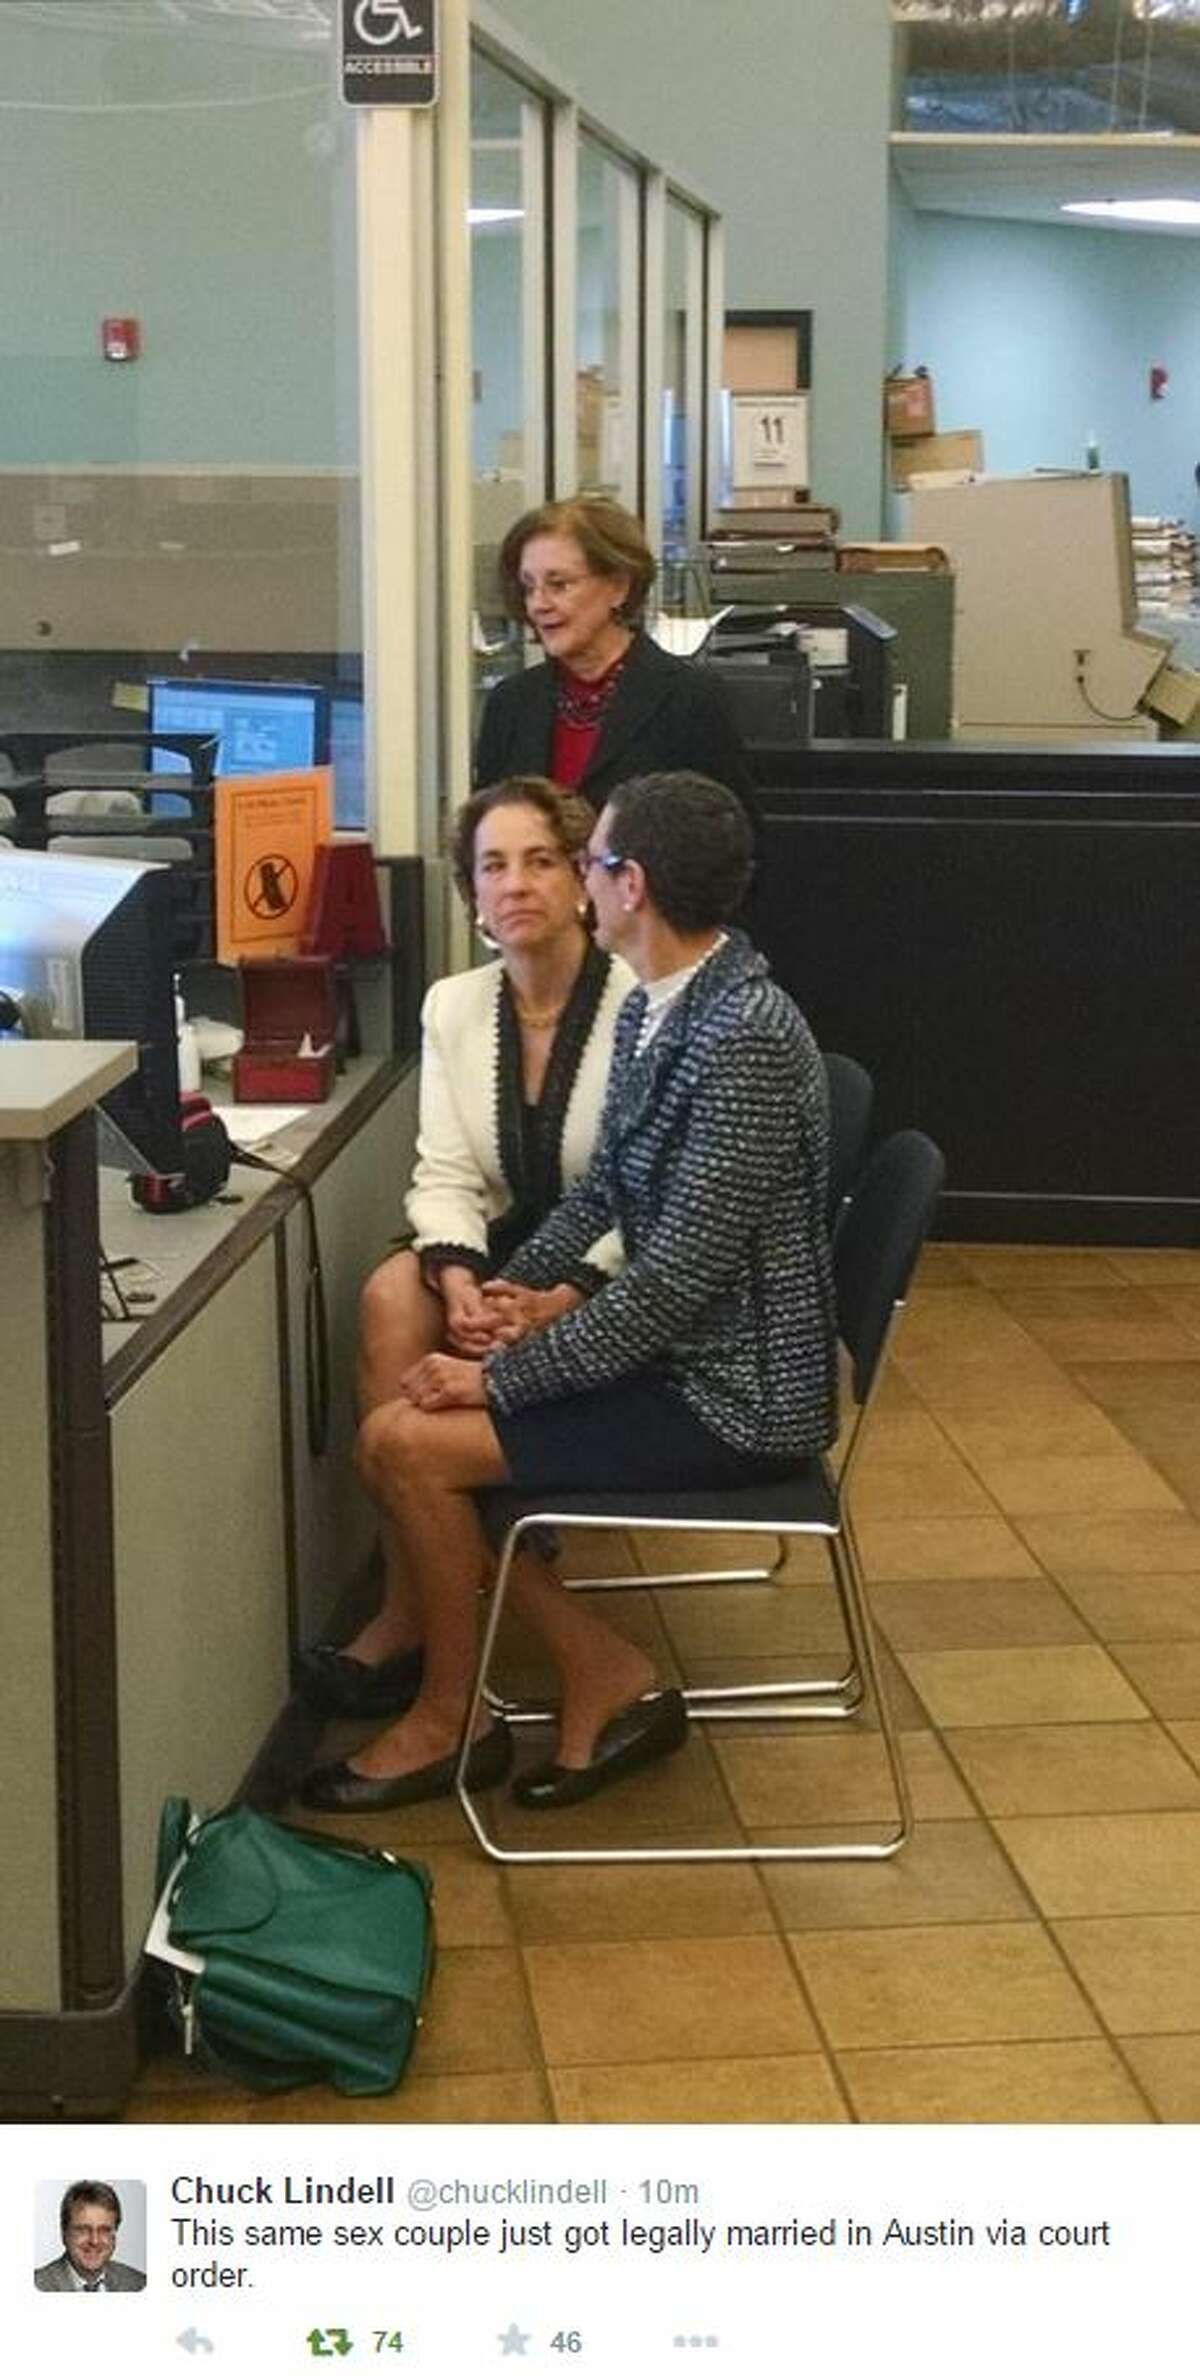 A same-sex couple in Austin has legally married through a court order, according to media reports. Photos tweeted by Chuck Lindell, a reporter for the Austin American-Statesman, show Suzanne Bryant and Sarah Goodfriend posing with a marriage license Thursday morning at the Travis County Clerk's office.